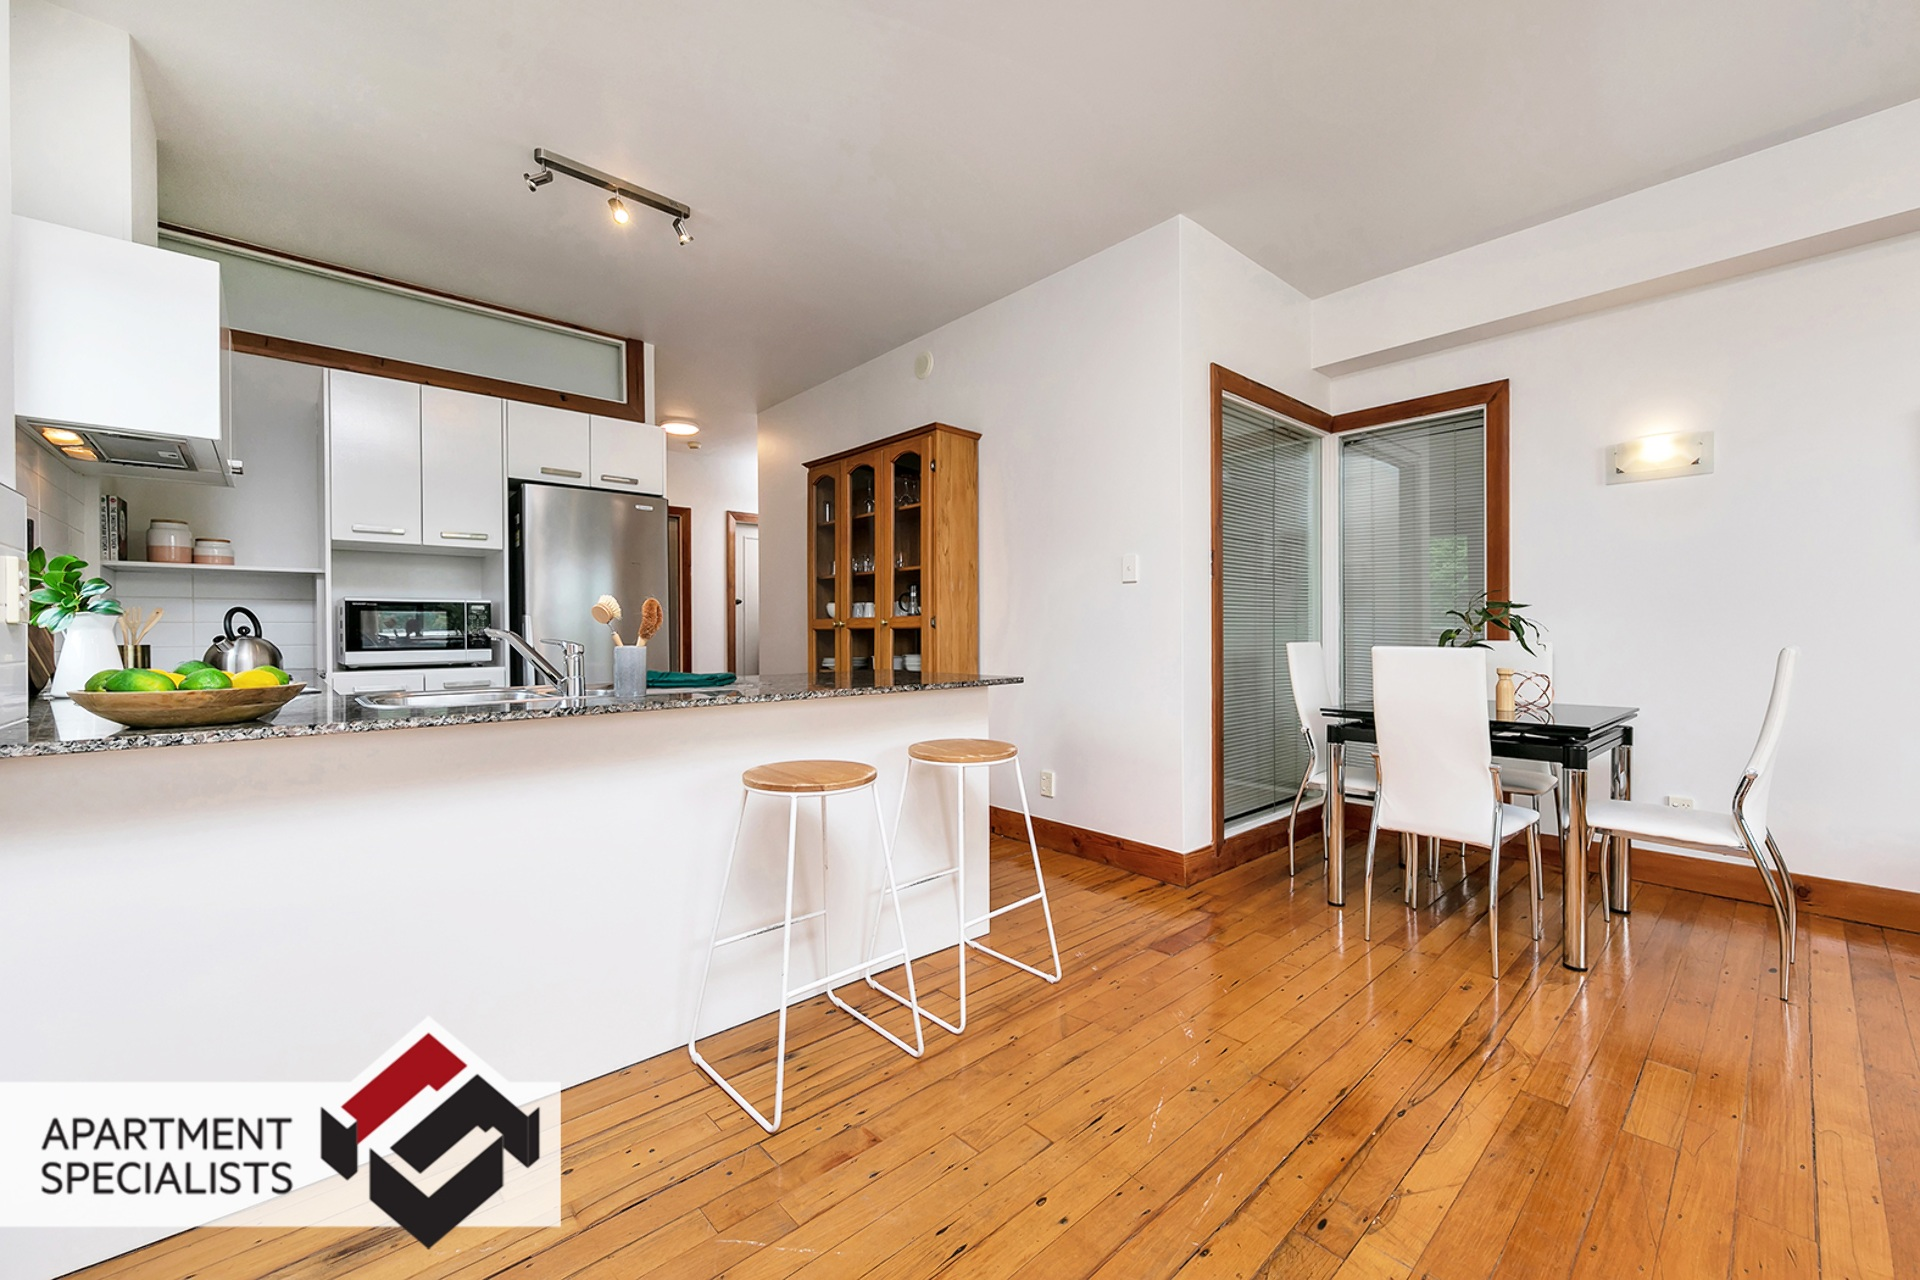 4 | 30 Heather Street, Parnell | Apartment Specialists